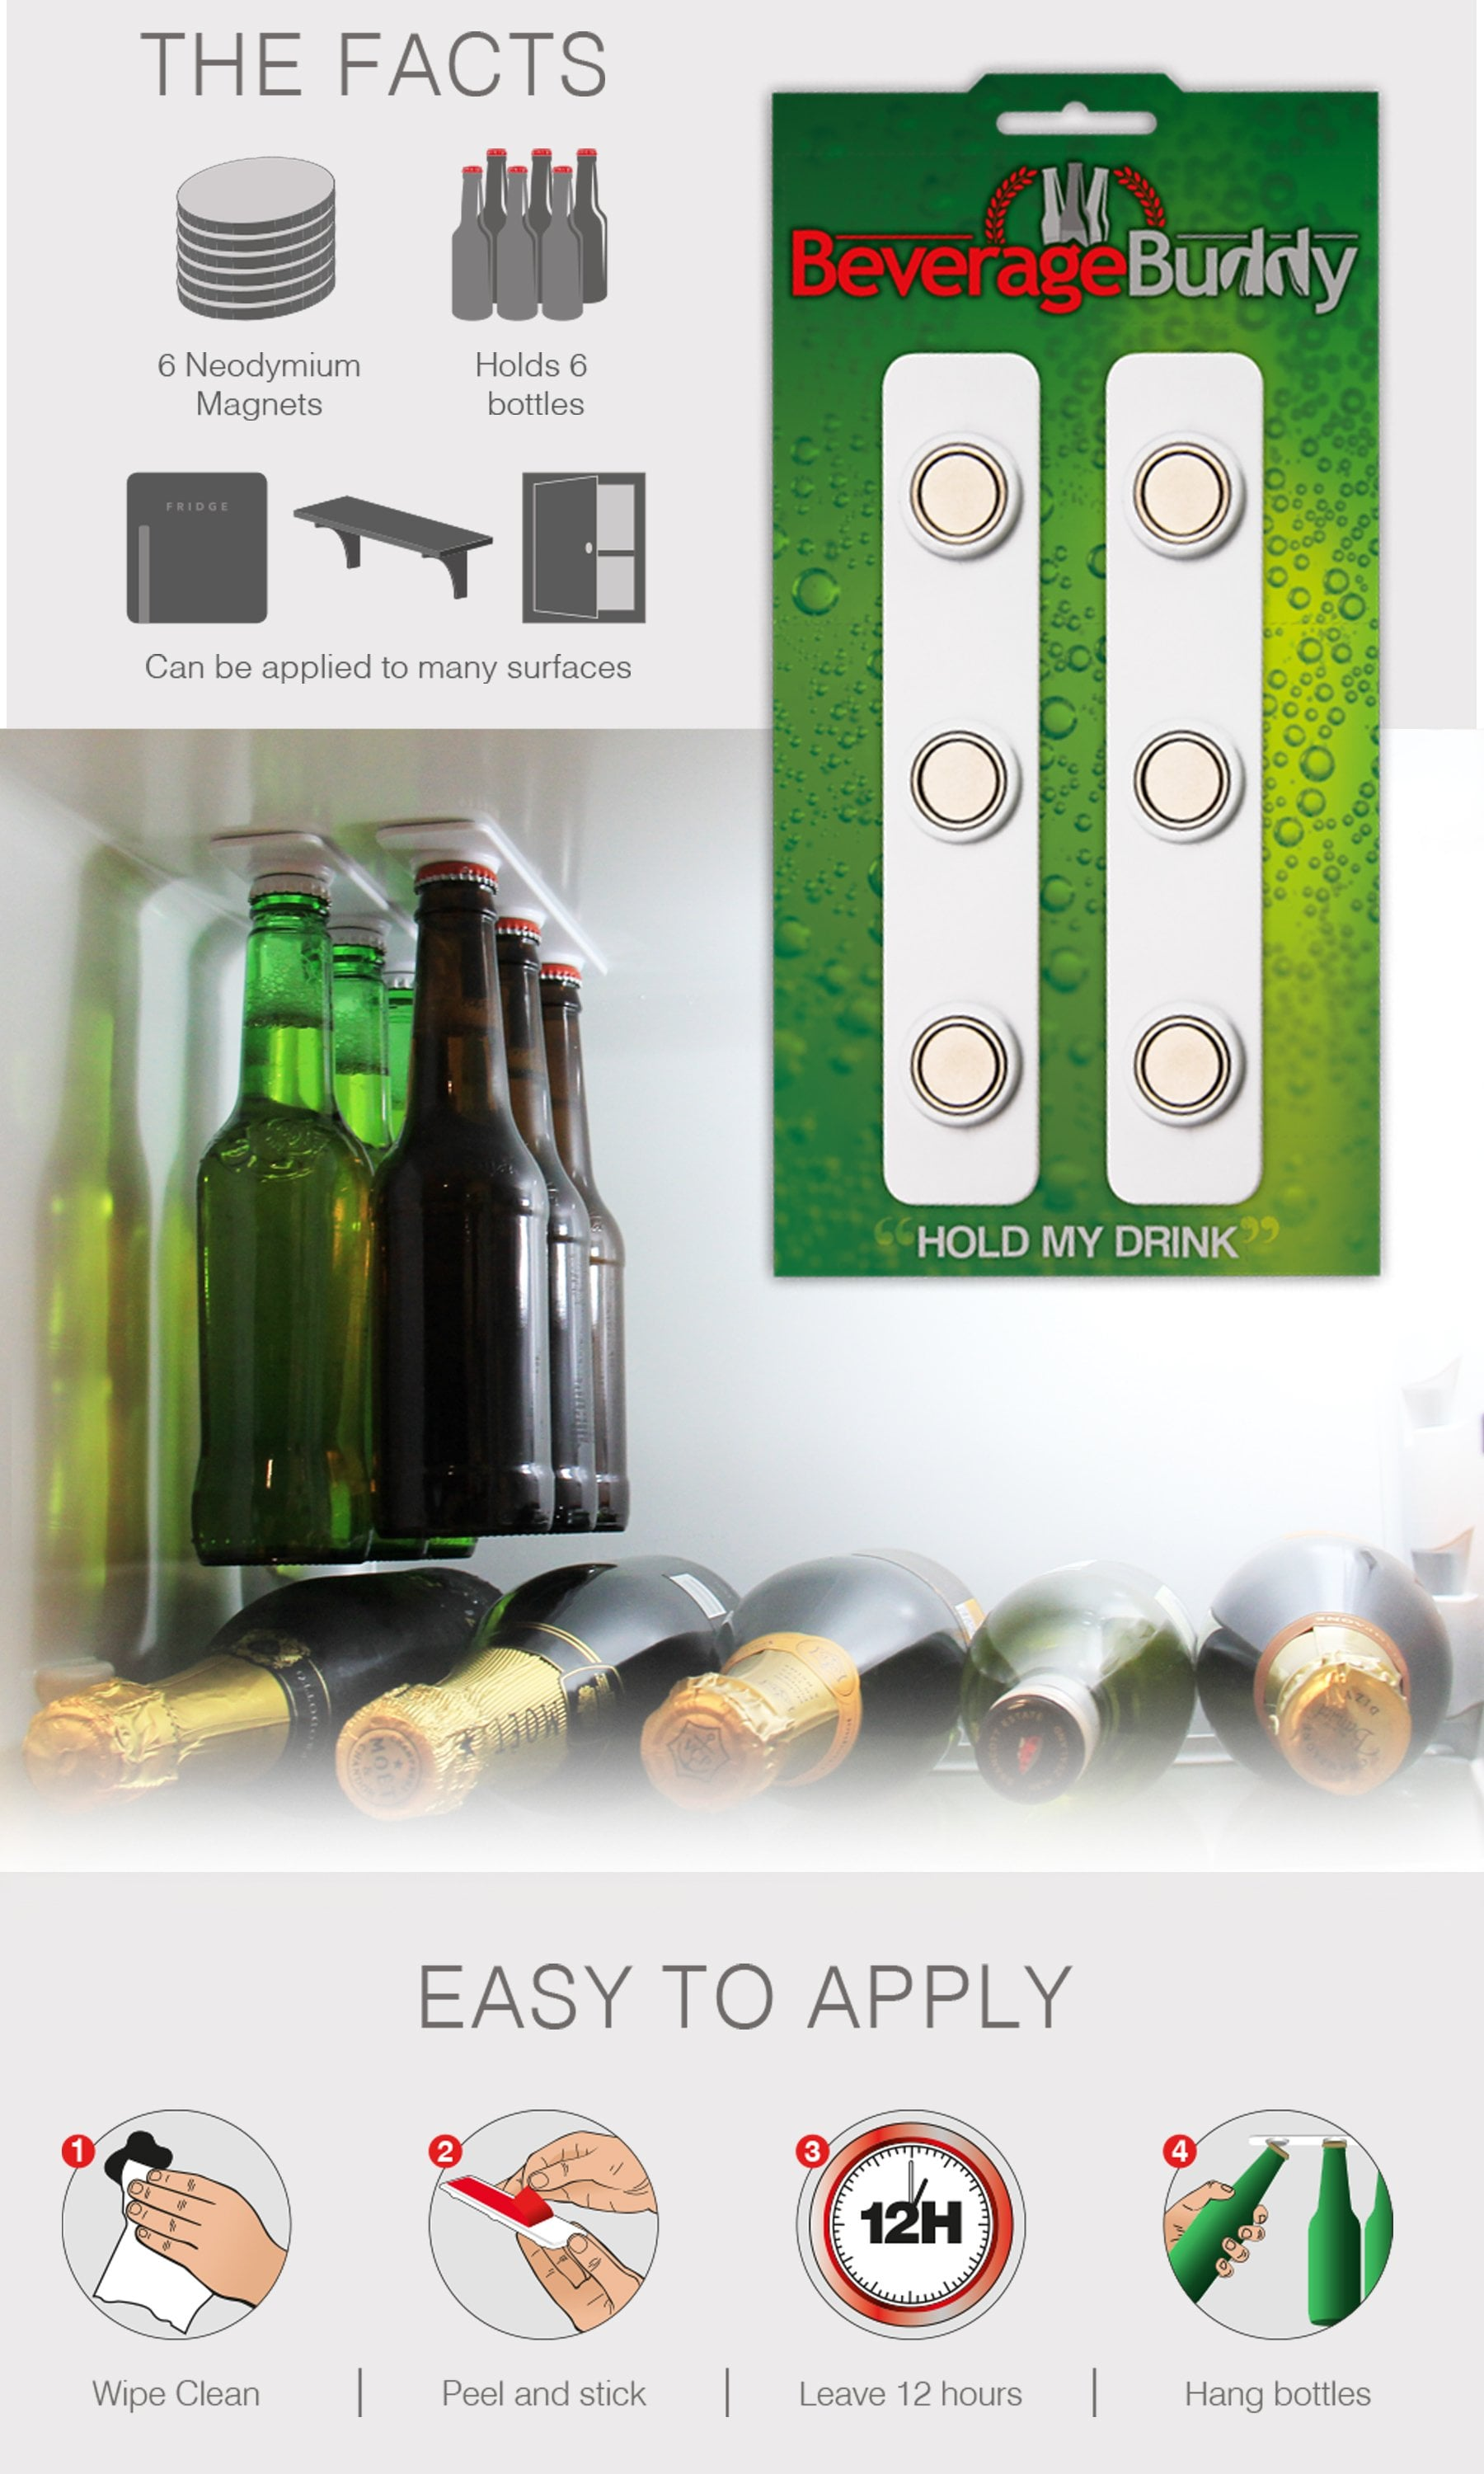 Beverage Buddy Holds up to 6 bottles with strong neodymium magnets and can be applied to many surfaces